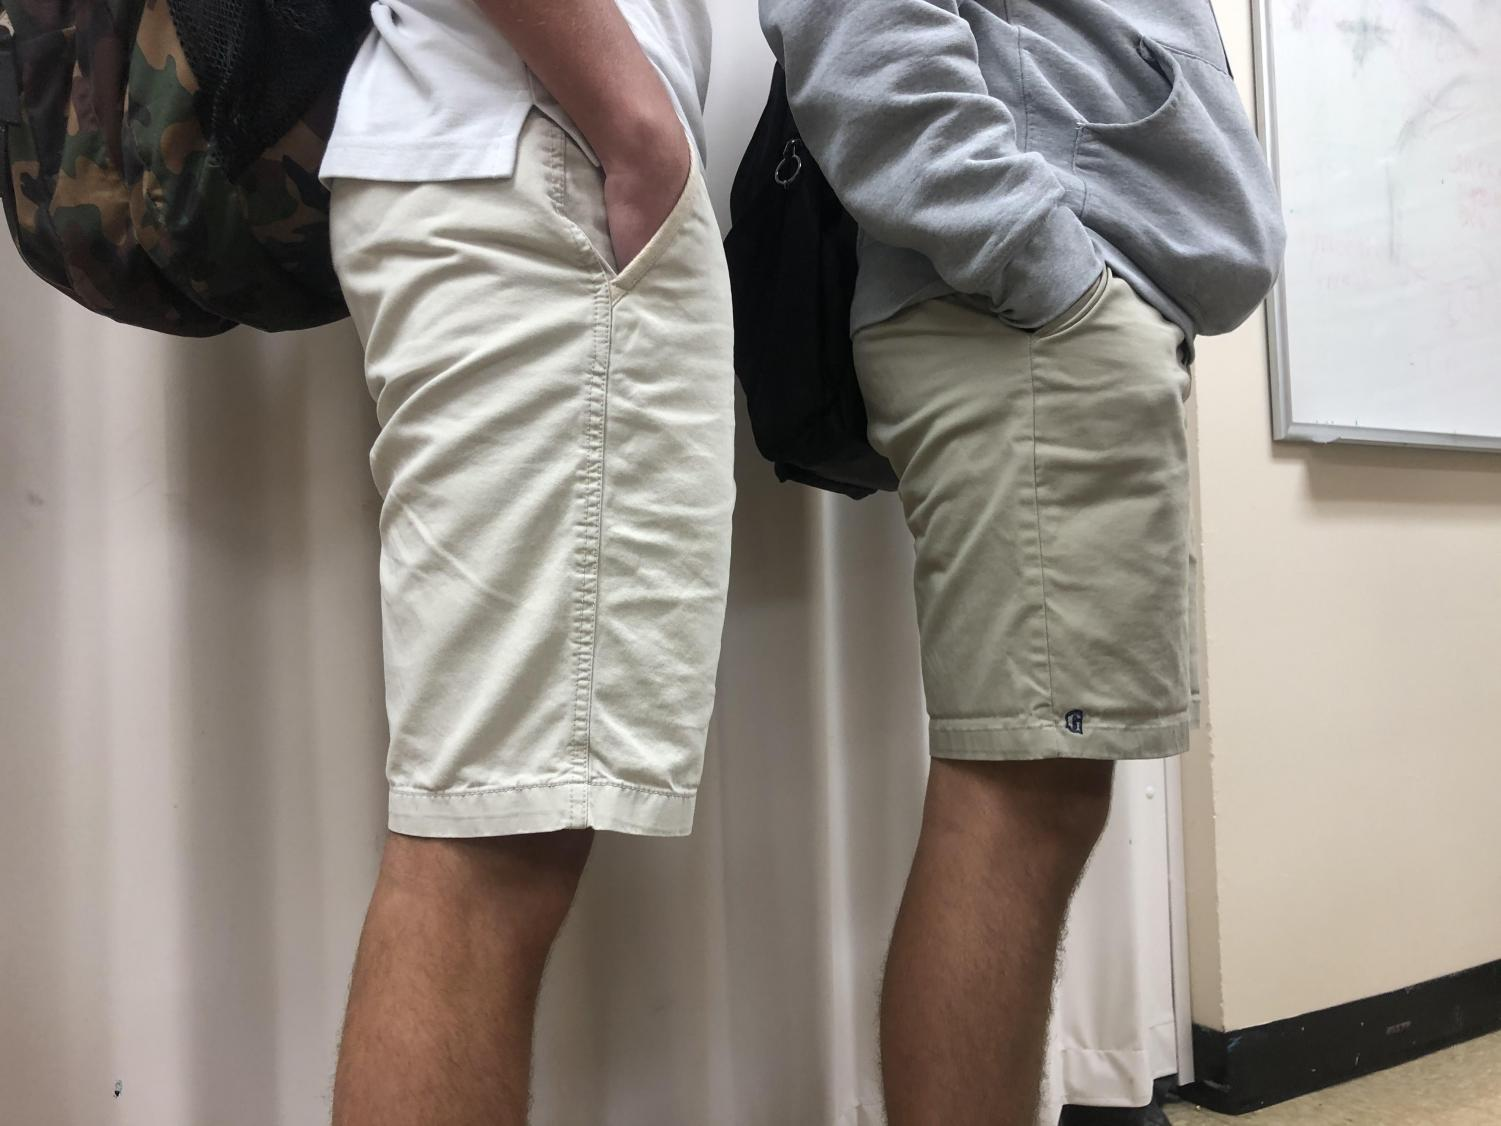 Students stand side by side wearing variations of